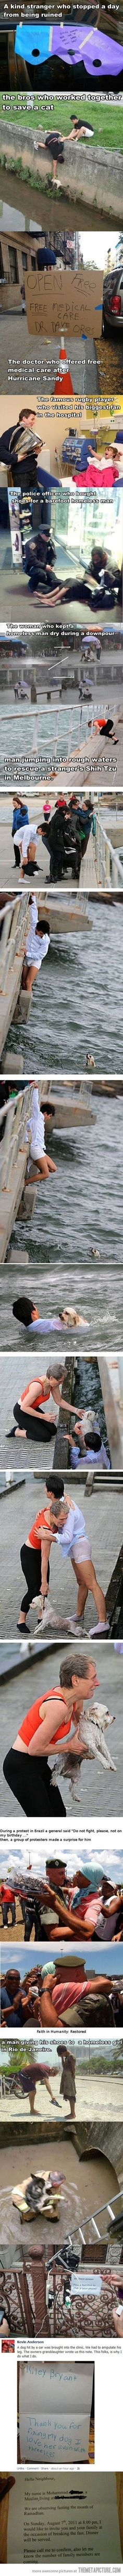 Moments that restored my faith in humanity. Tears